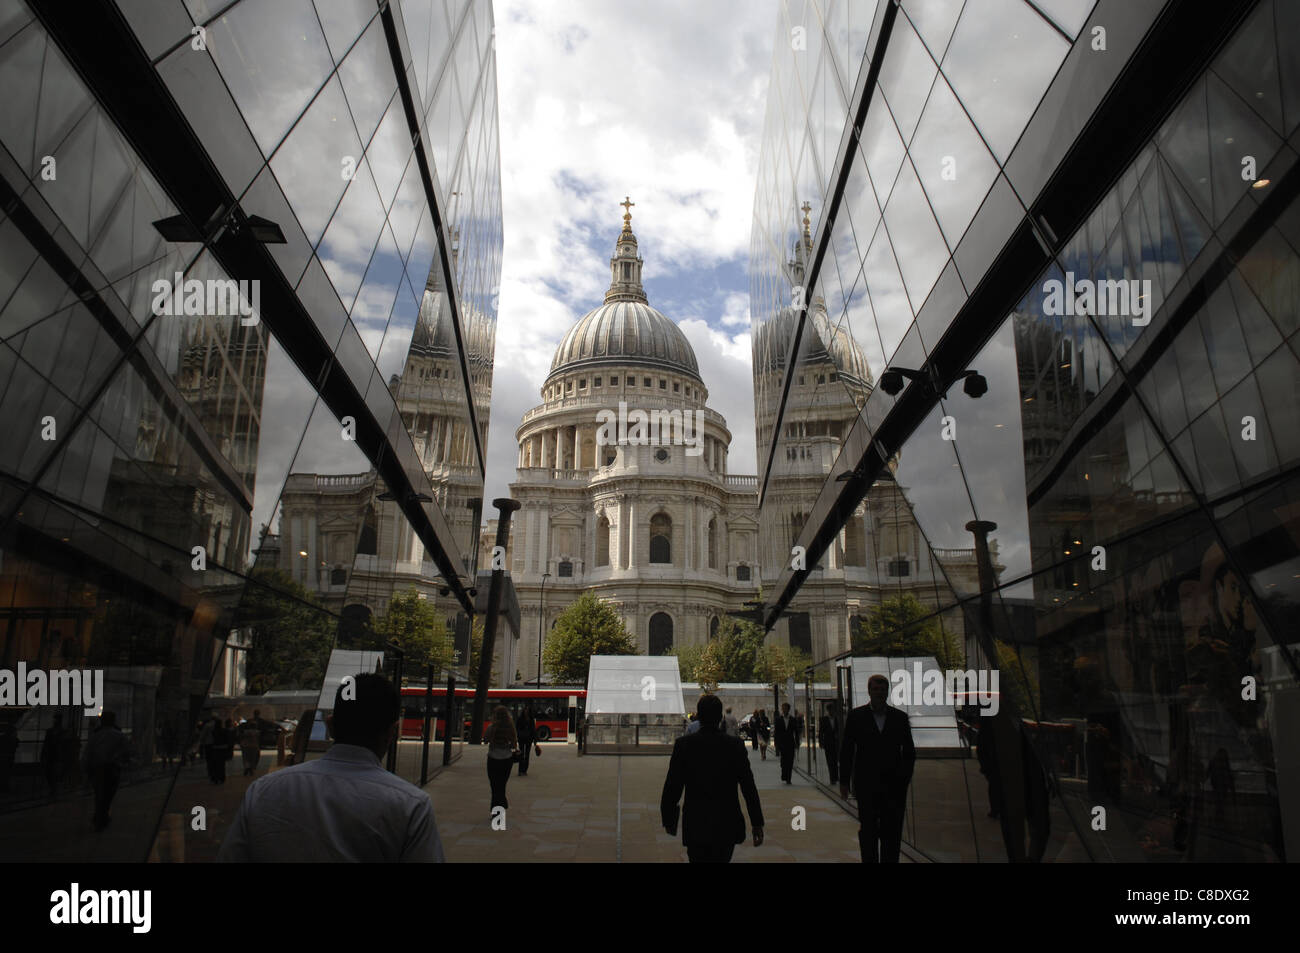 View of St. Paul's Cathedral from One New Change shopping Center. This exciting new center affords great views - Stock Image